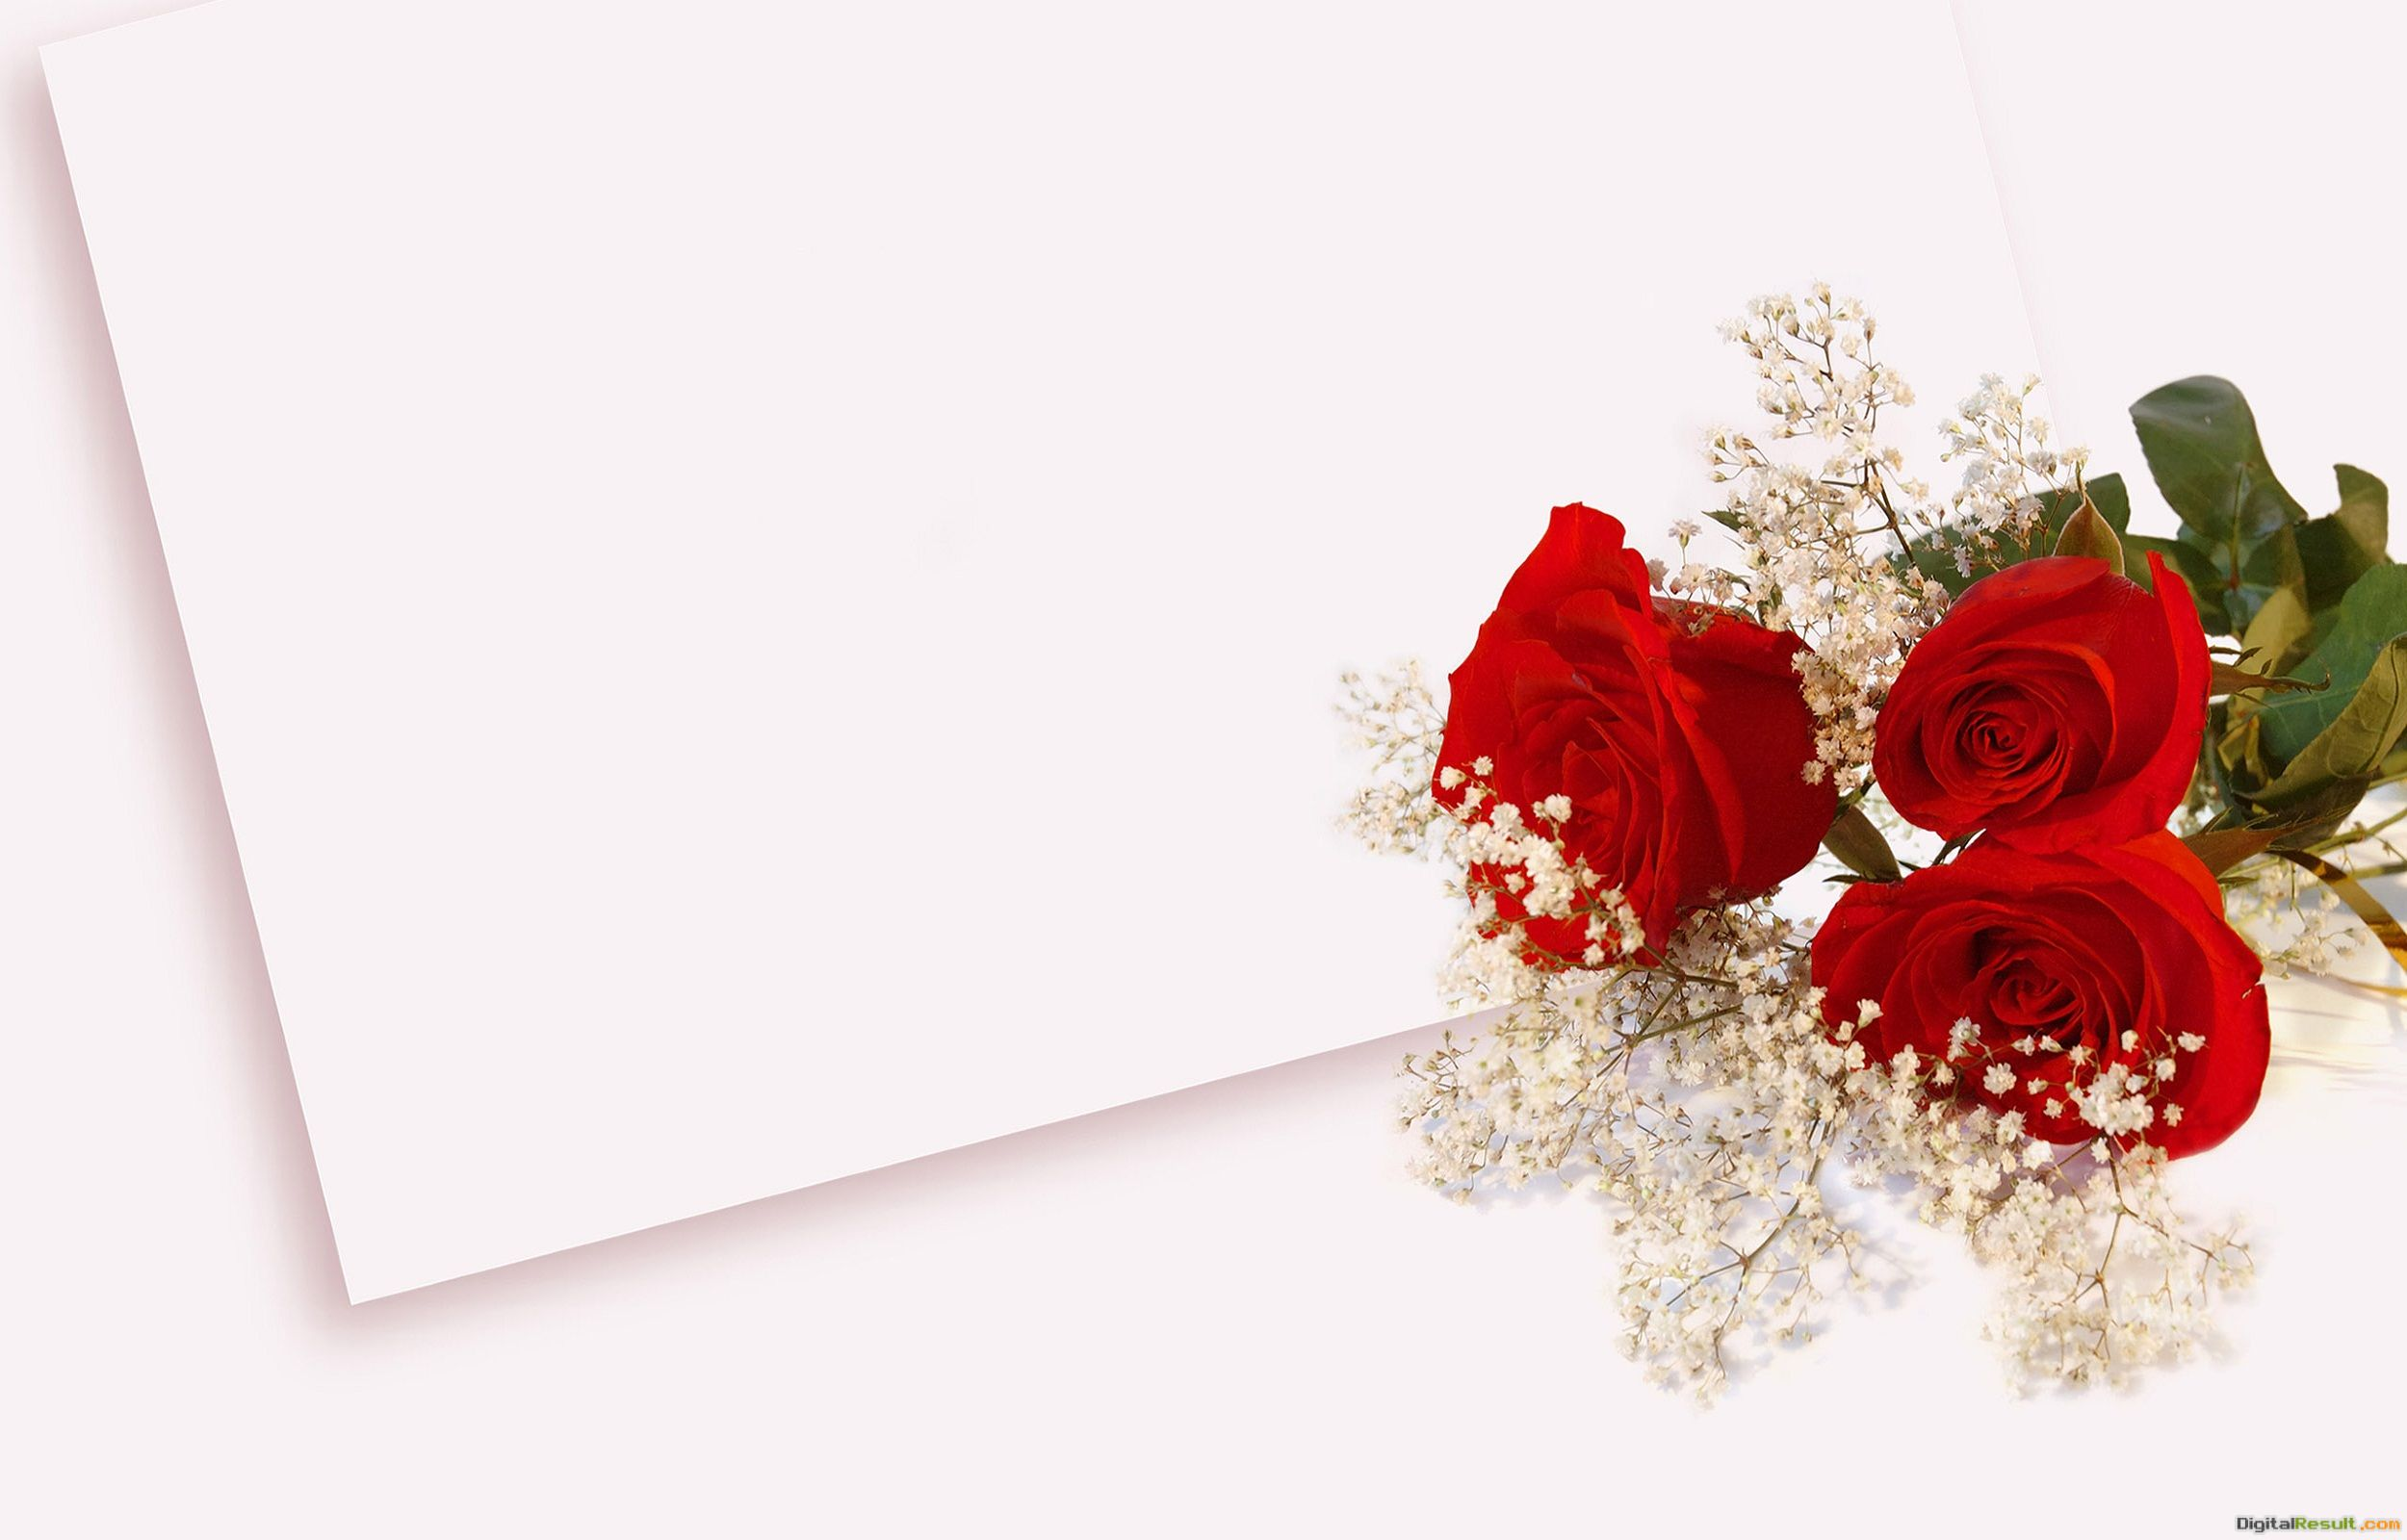 Rose For You Love Cards Greetings Wishes HD 1080p | HD Wallpapers 1599